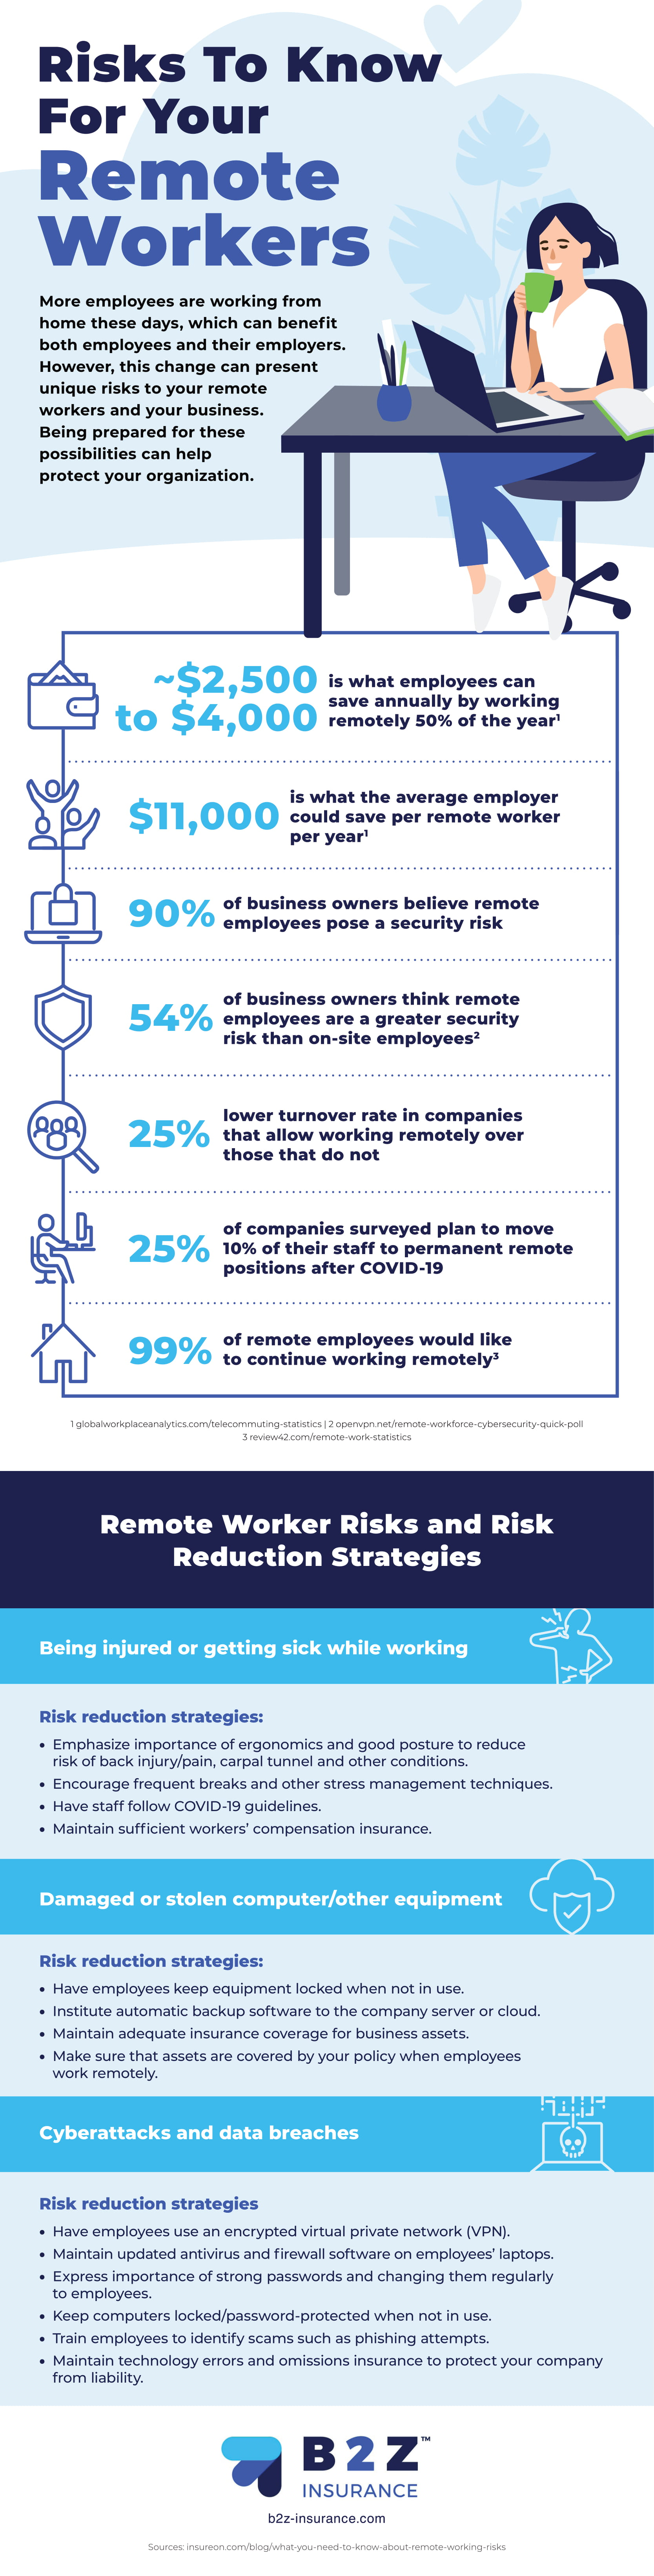 The Keys To Keeping Your Remote Workforce Safe From Cyber Threats